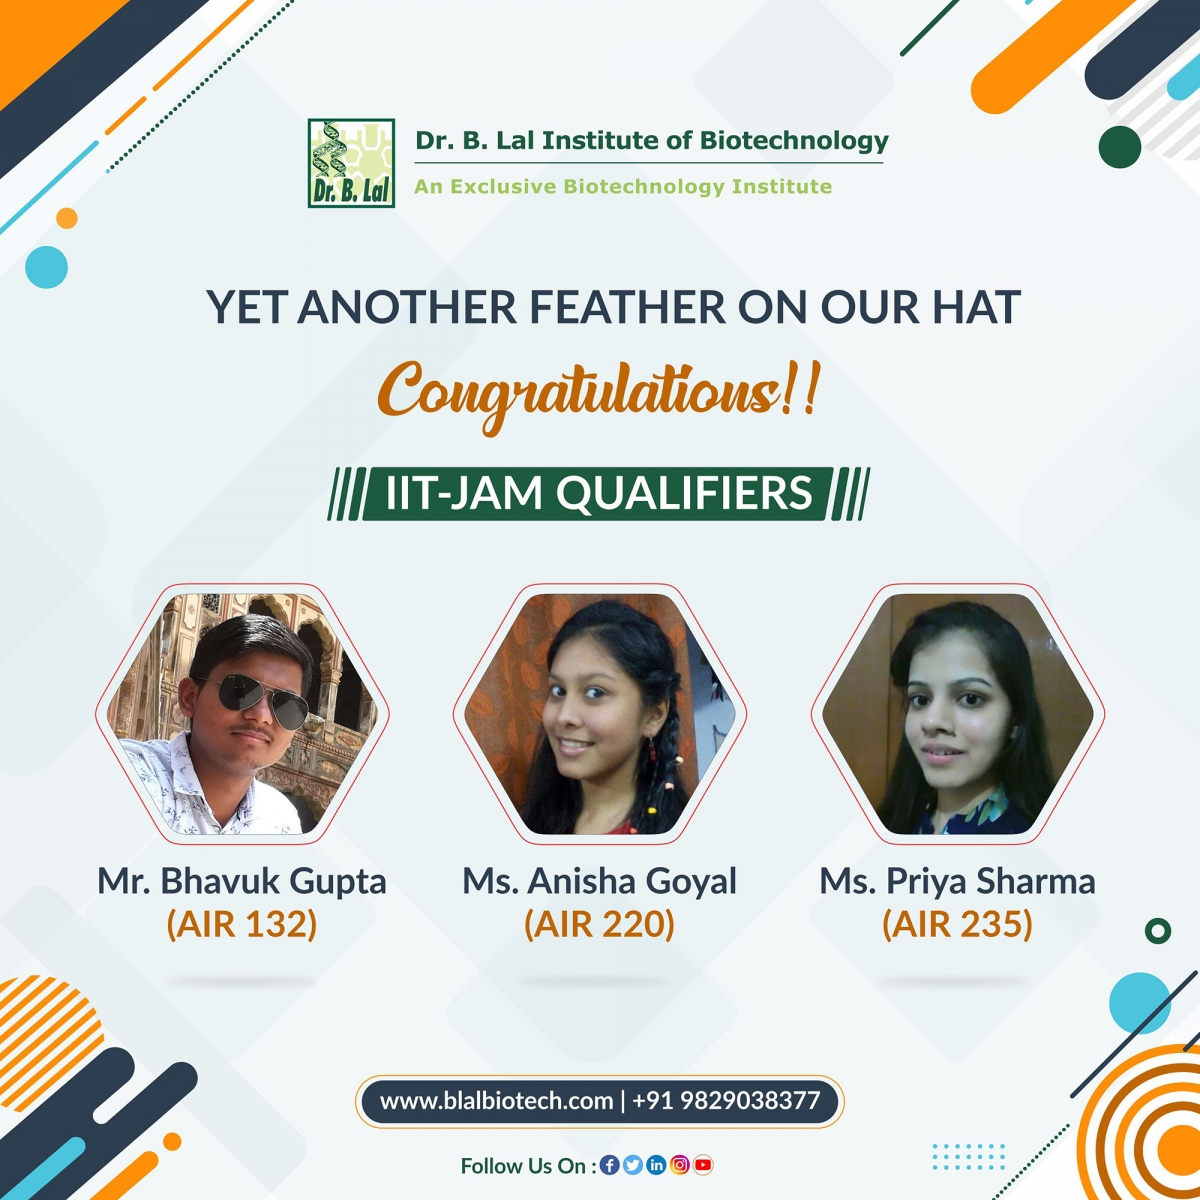 IIT-JAM QUALIFIERS   Dr. B. Lal Institute of Biotechnology